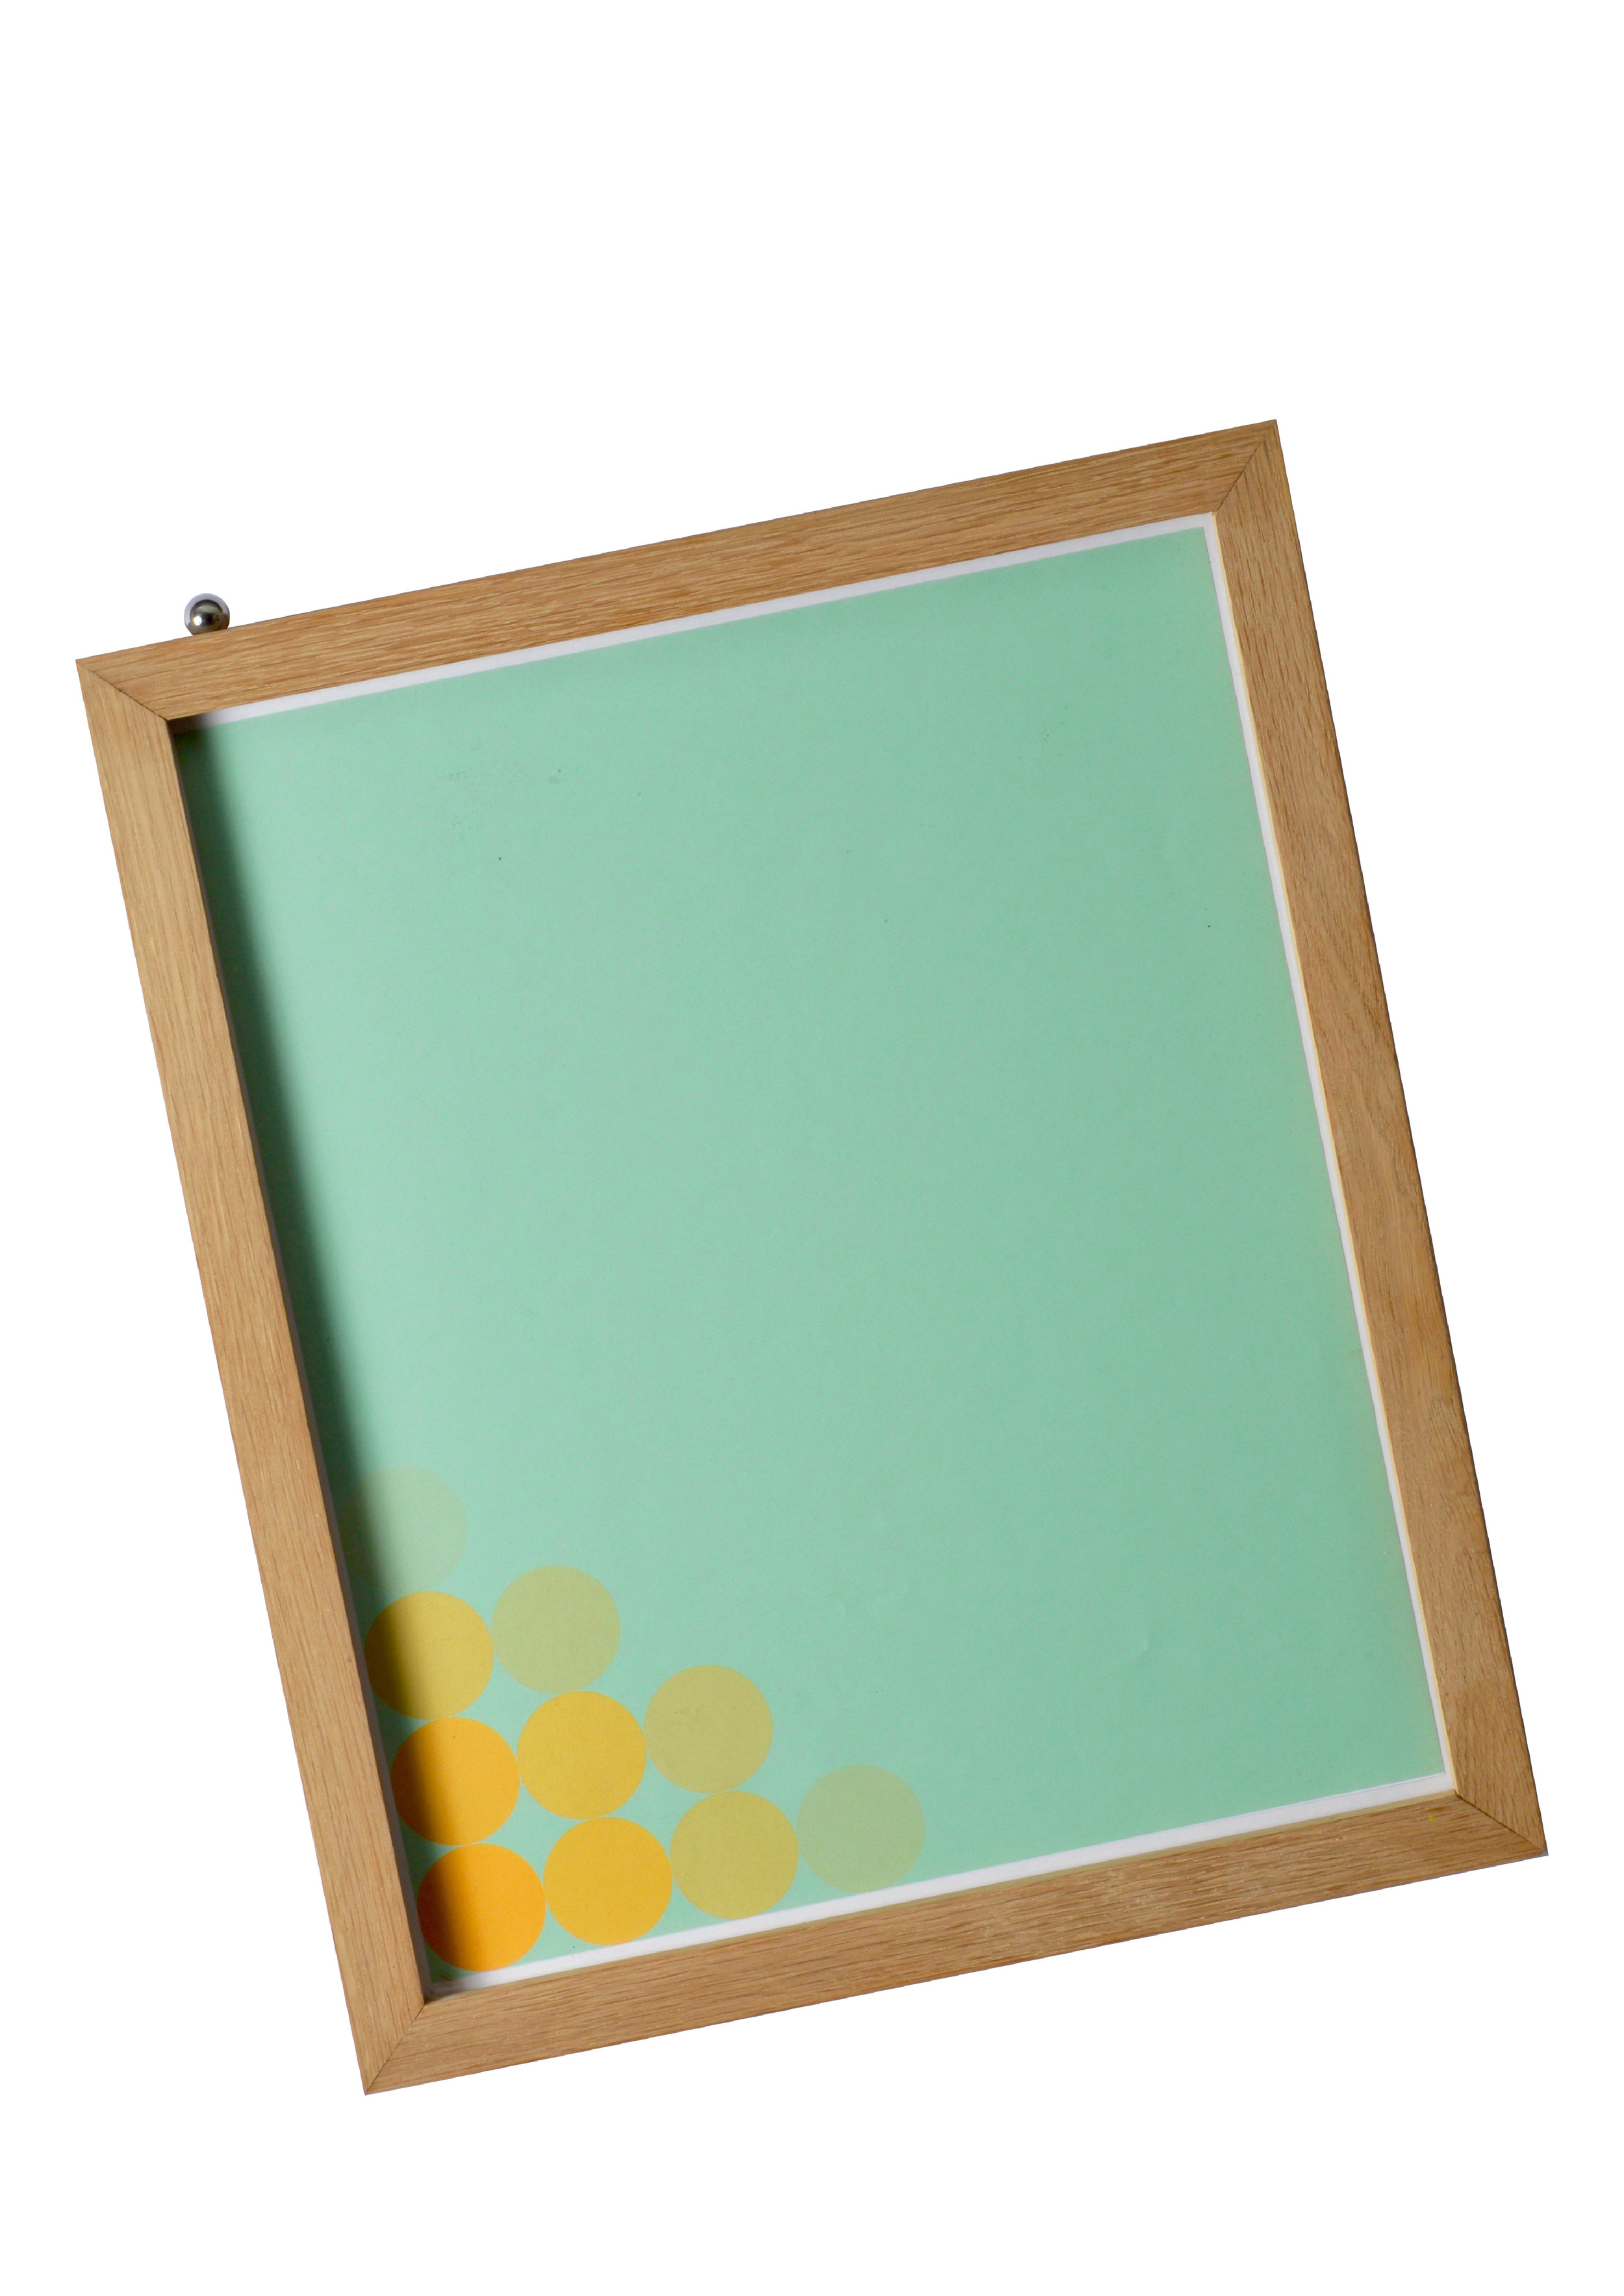 Spirit Frame - The frame that tells you it's level.